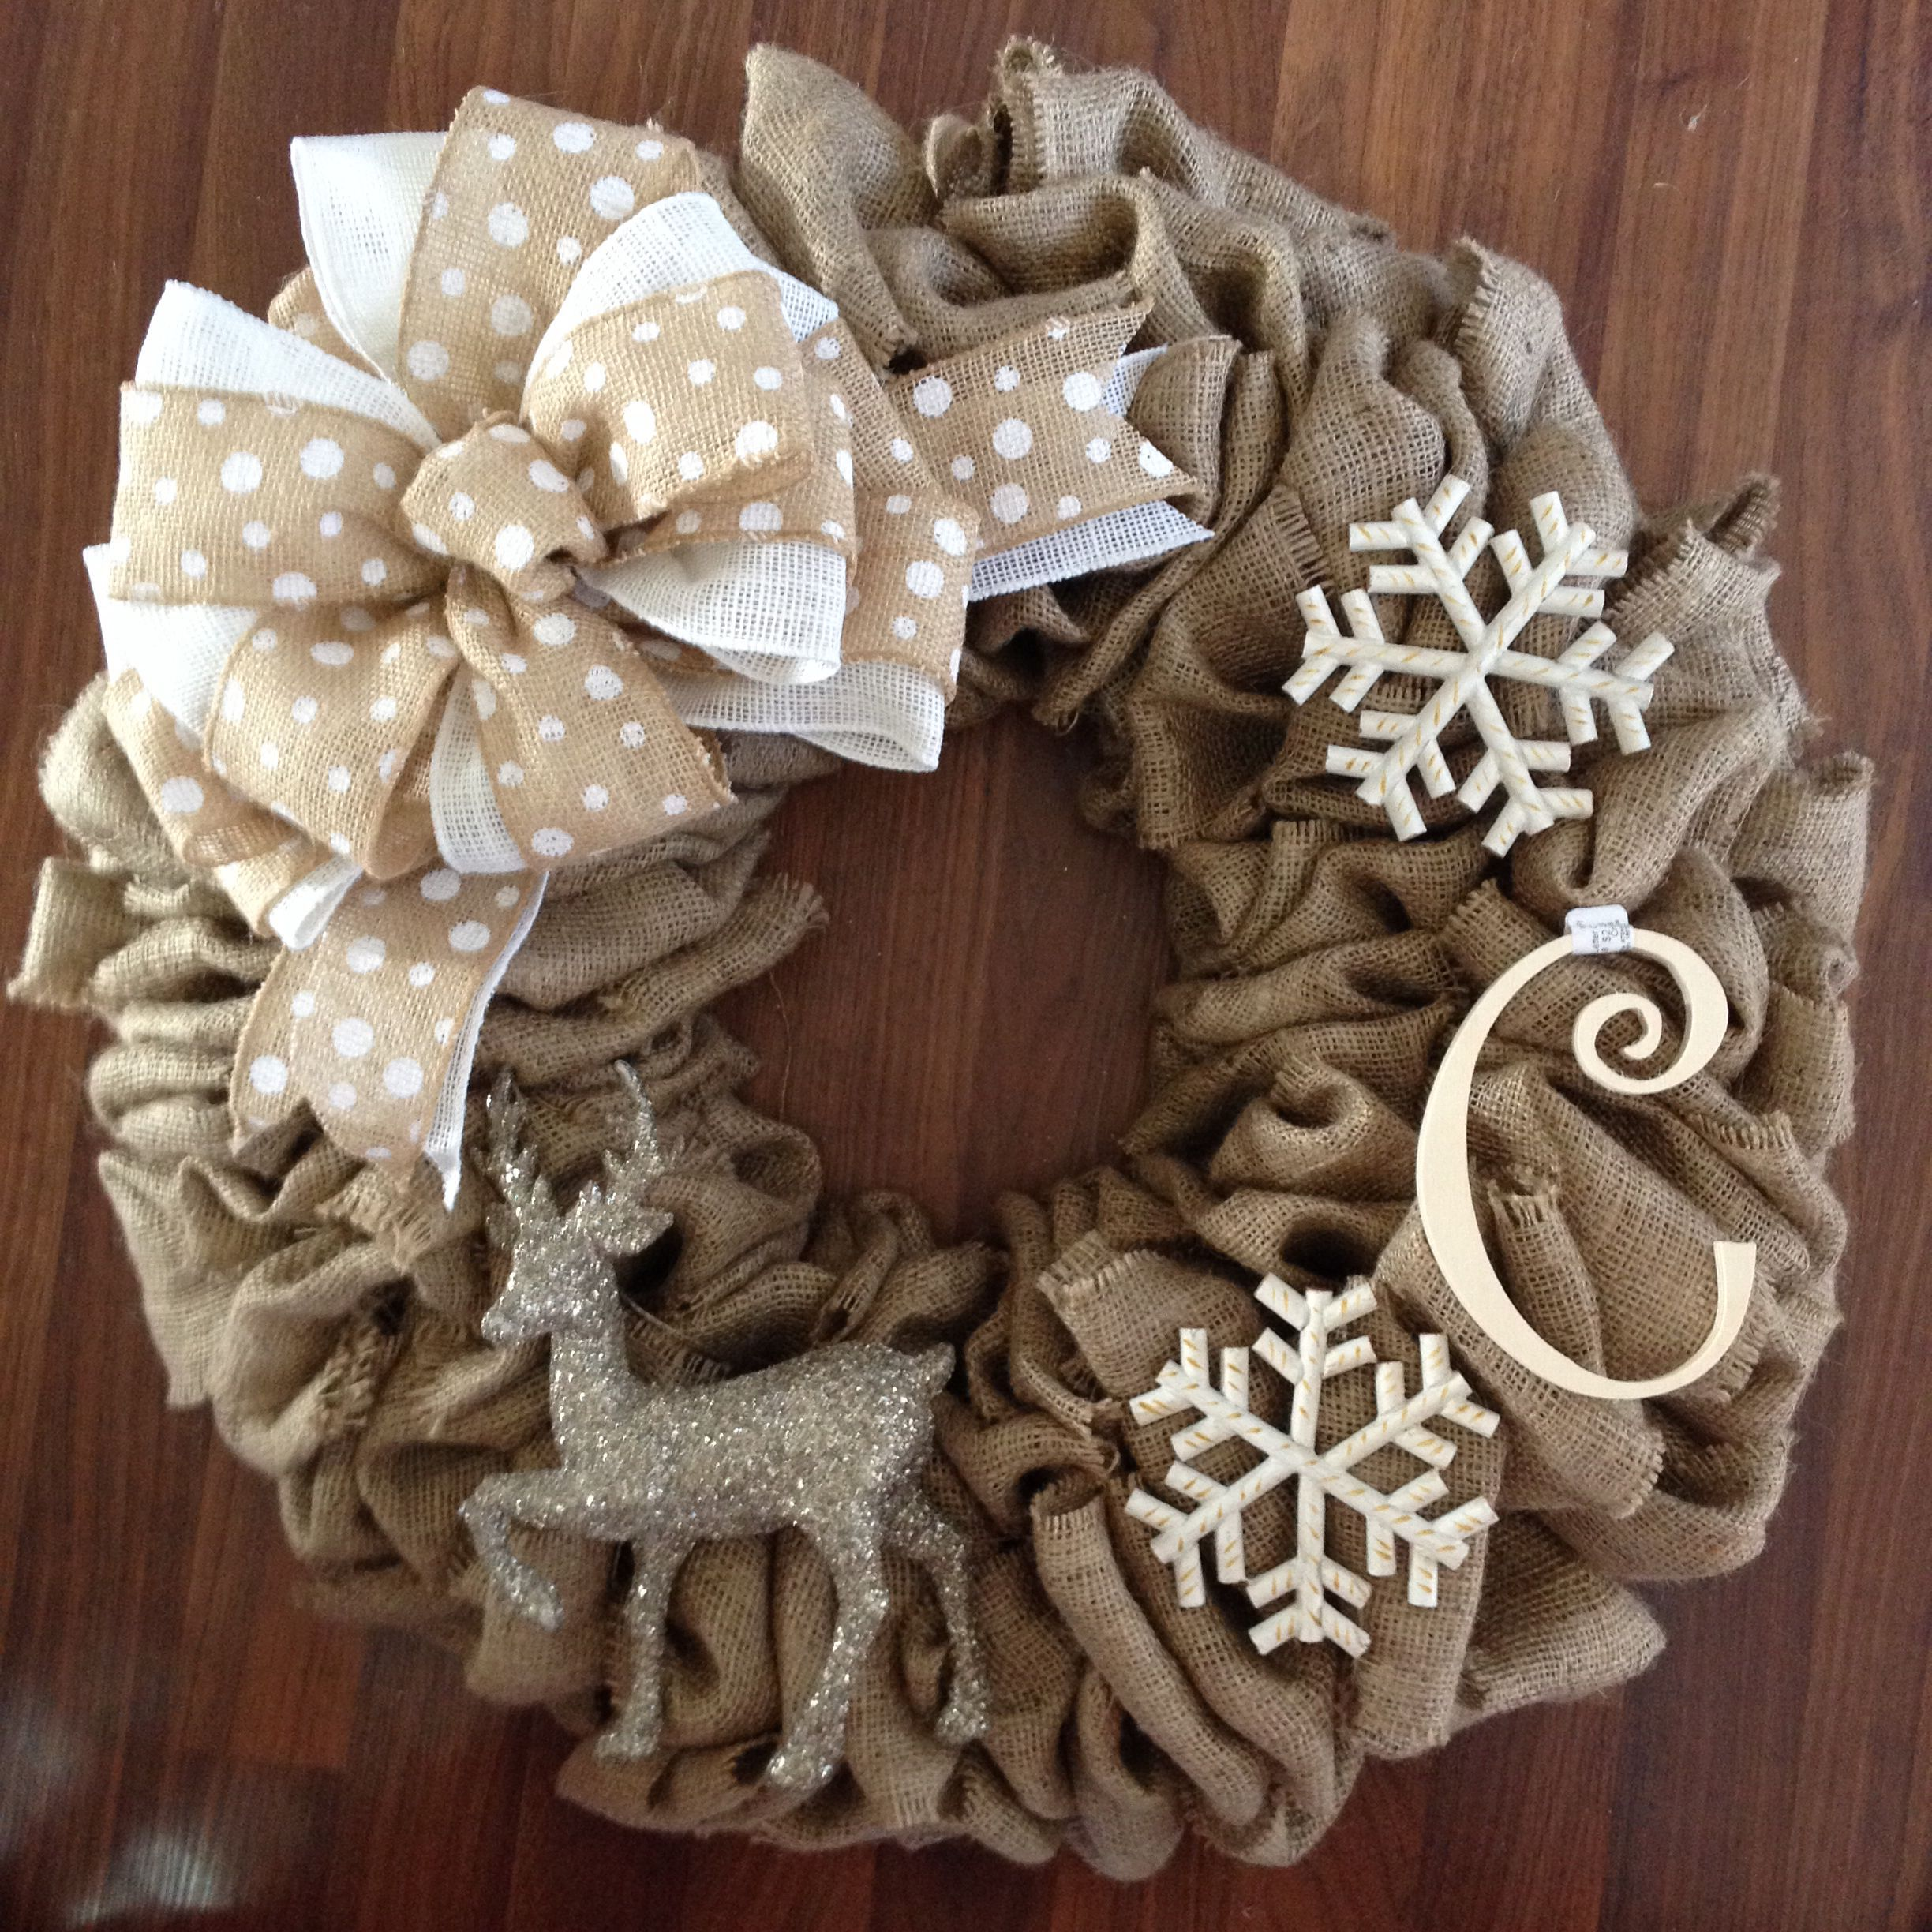 You searched for: spring wreath! Etsy is the home to thousands of handmade, vintage, and one-of-a-kind products and gifts related to your search. No matter what you're looking for or where you are in the world, our global marketplace of sellers can help you find unique and affordable options. Let's get started!